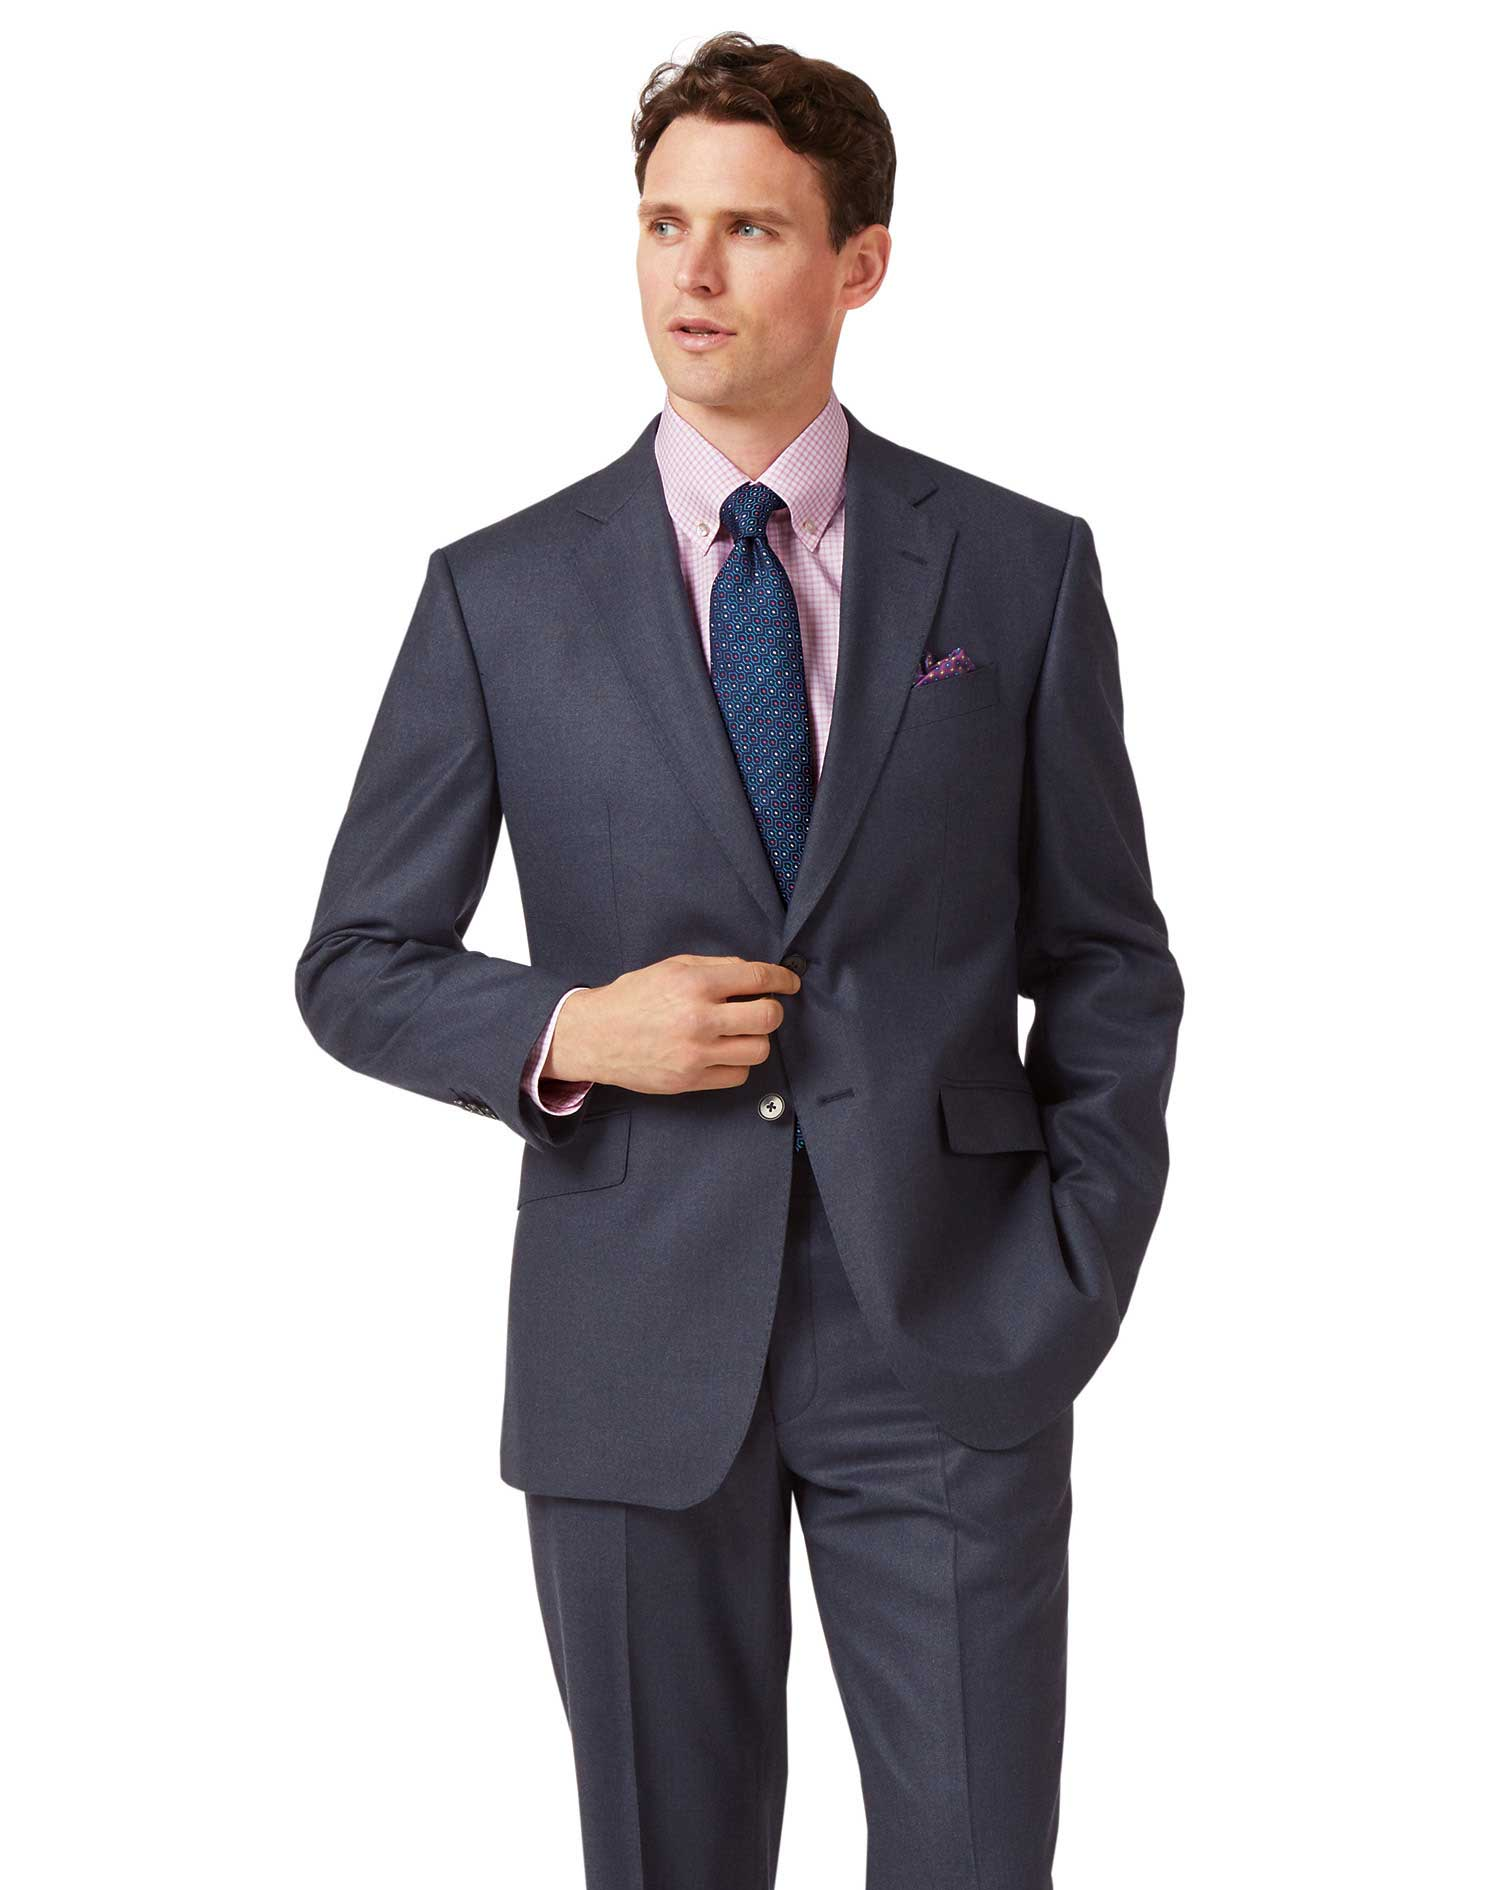 Airforce Blue Classic Fit Flannel Business Suit Wool Jacket Size 40 Long by Charles Tyrwhitt